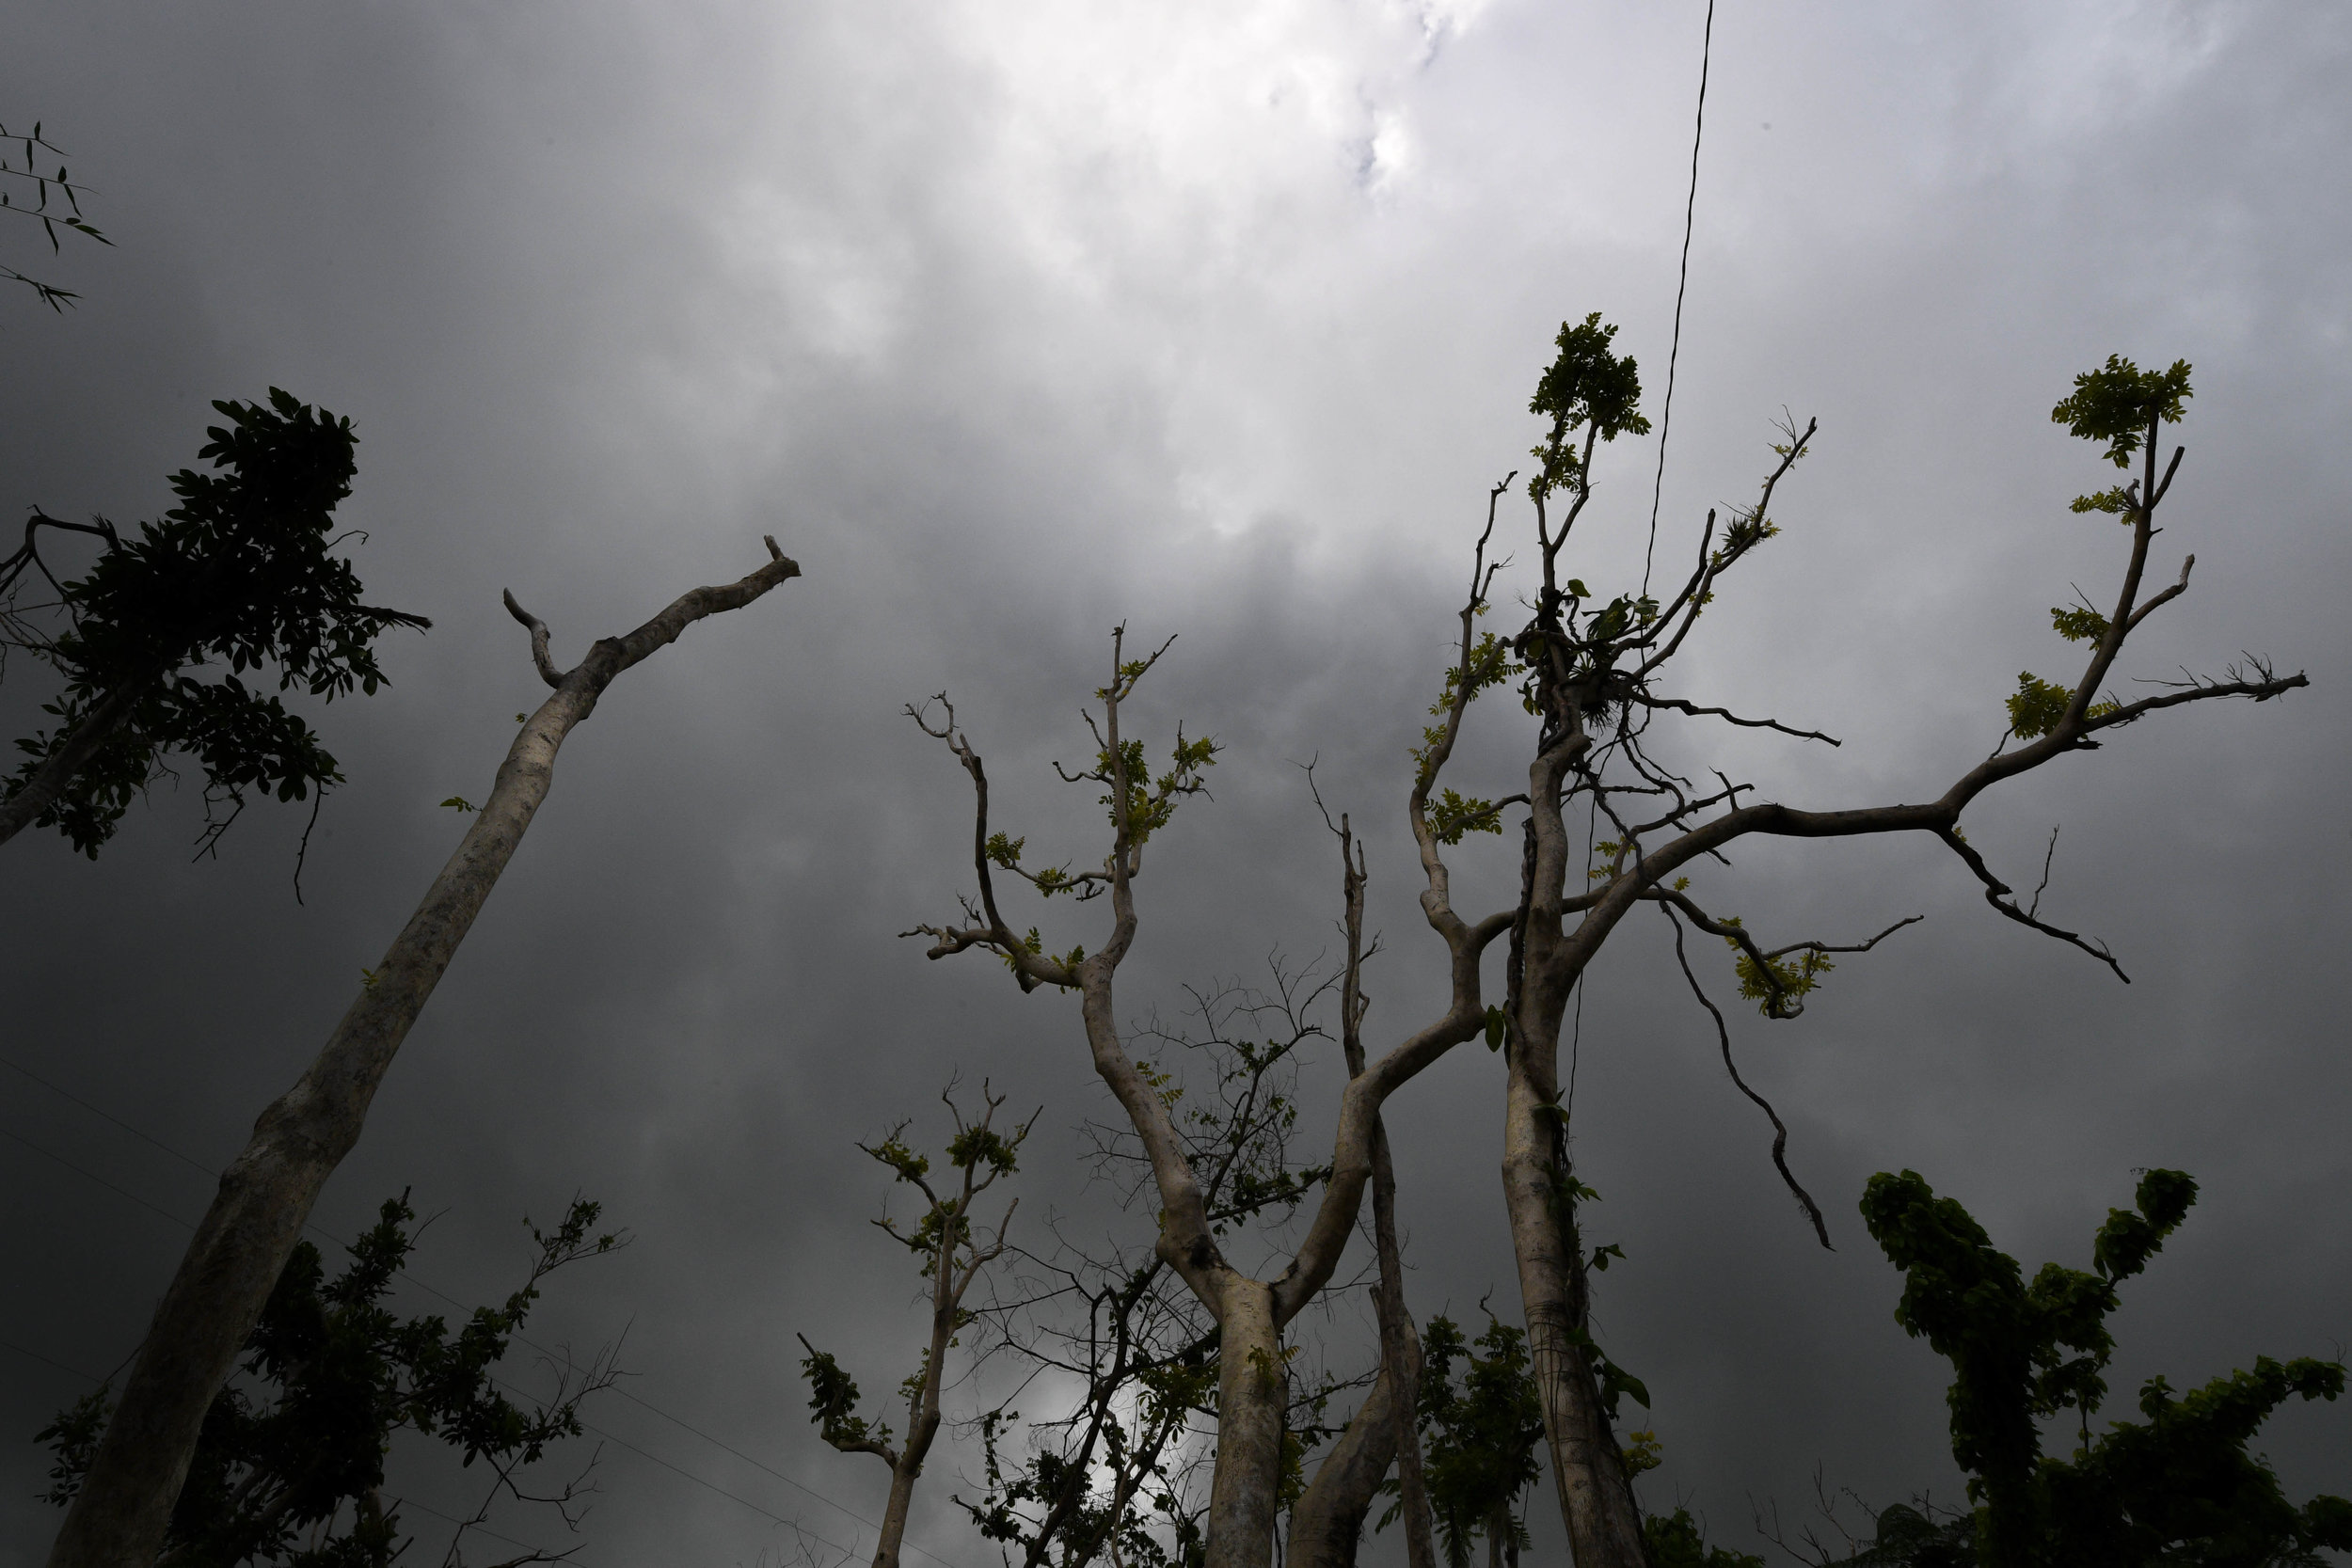 Trees in the mountains of Puerto Rico are left bent and stripped after winds of 185 mph from Hurricane Maria hit the island.